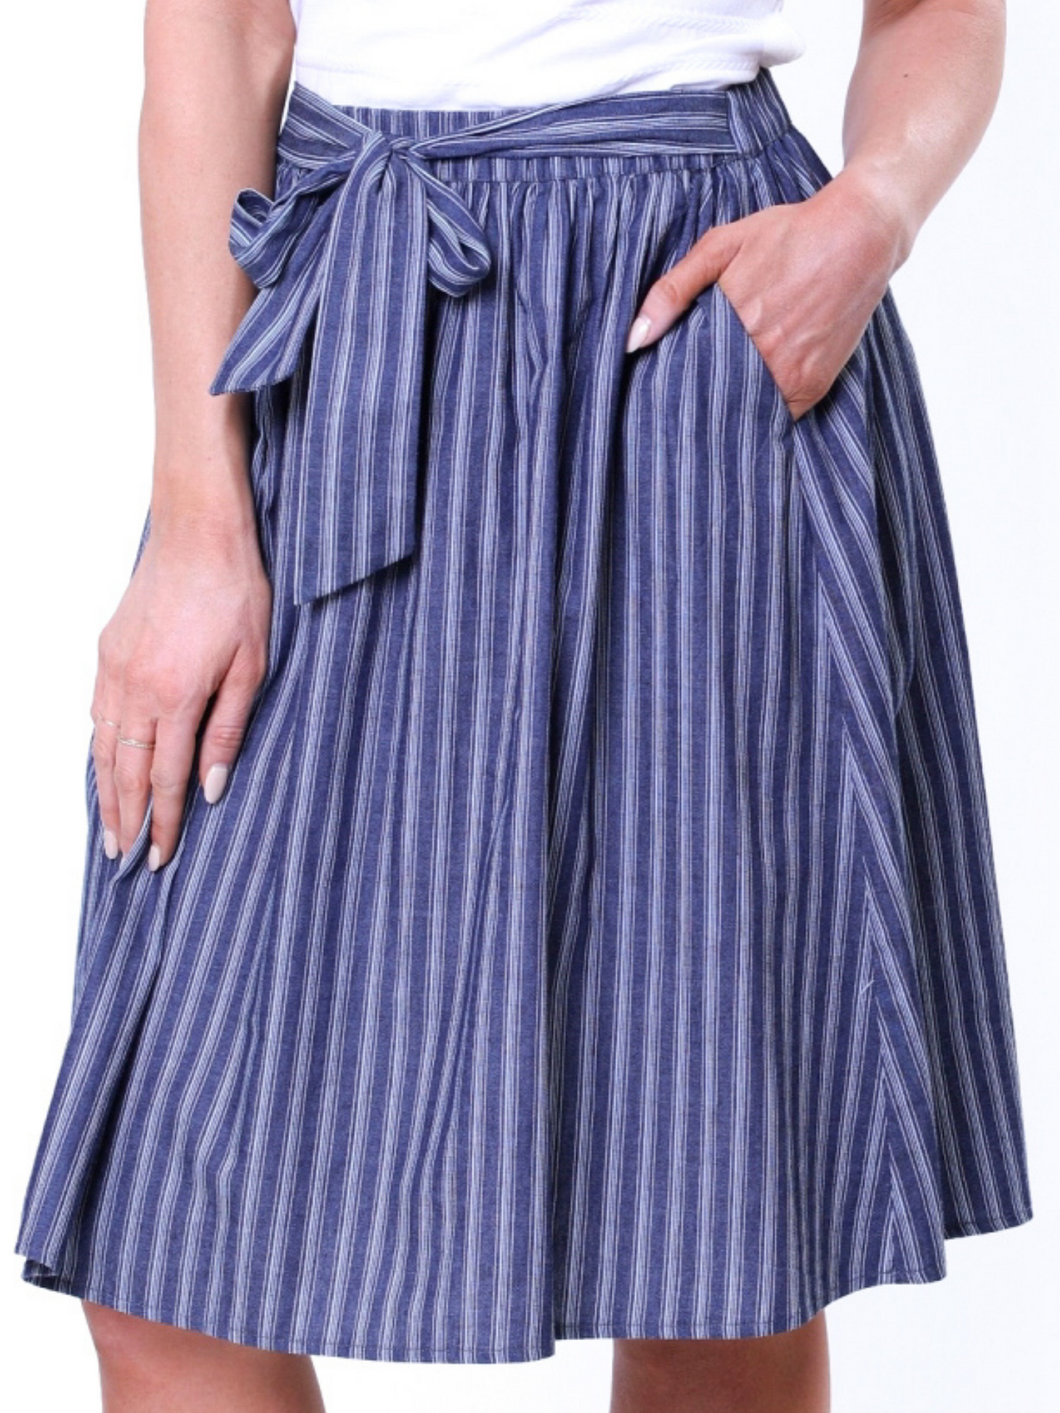 Harper Striped Tie Skirt